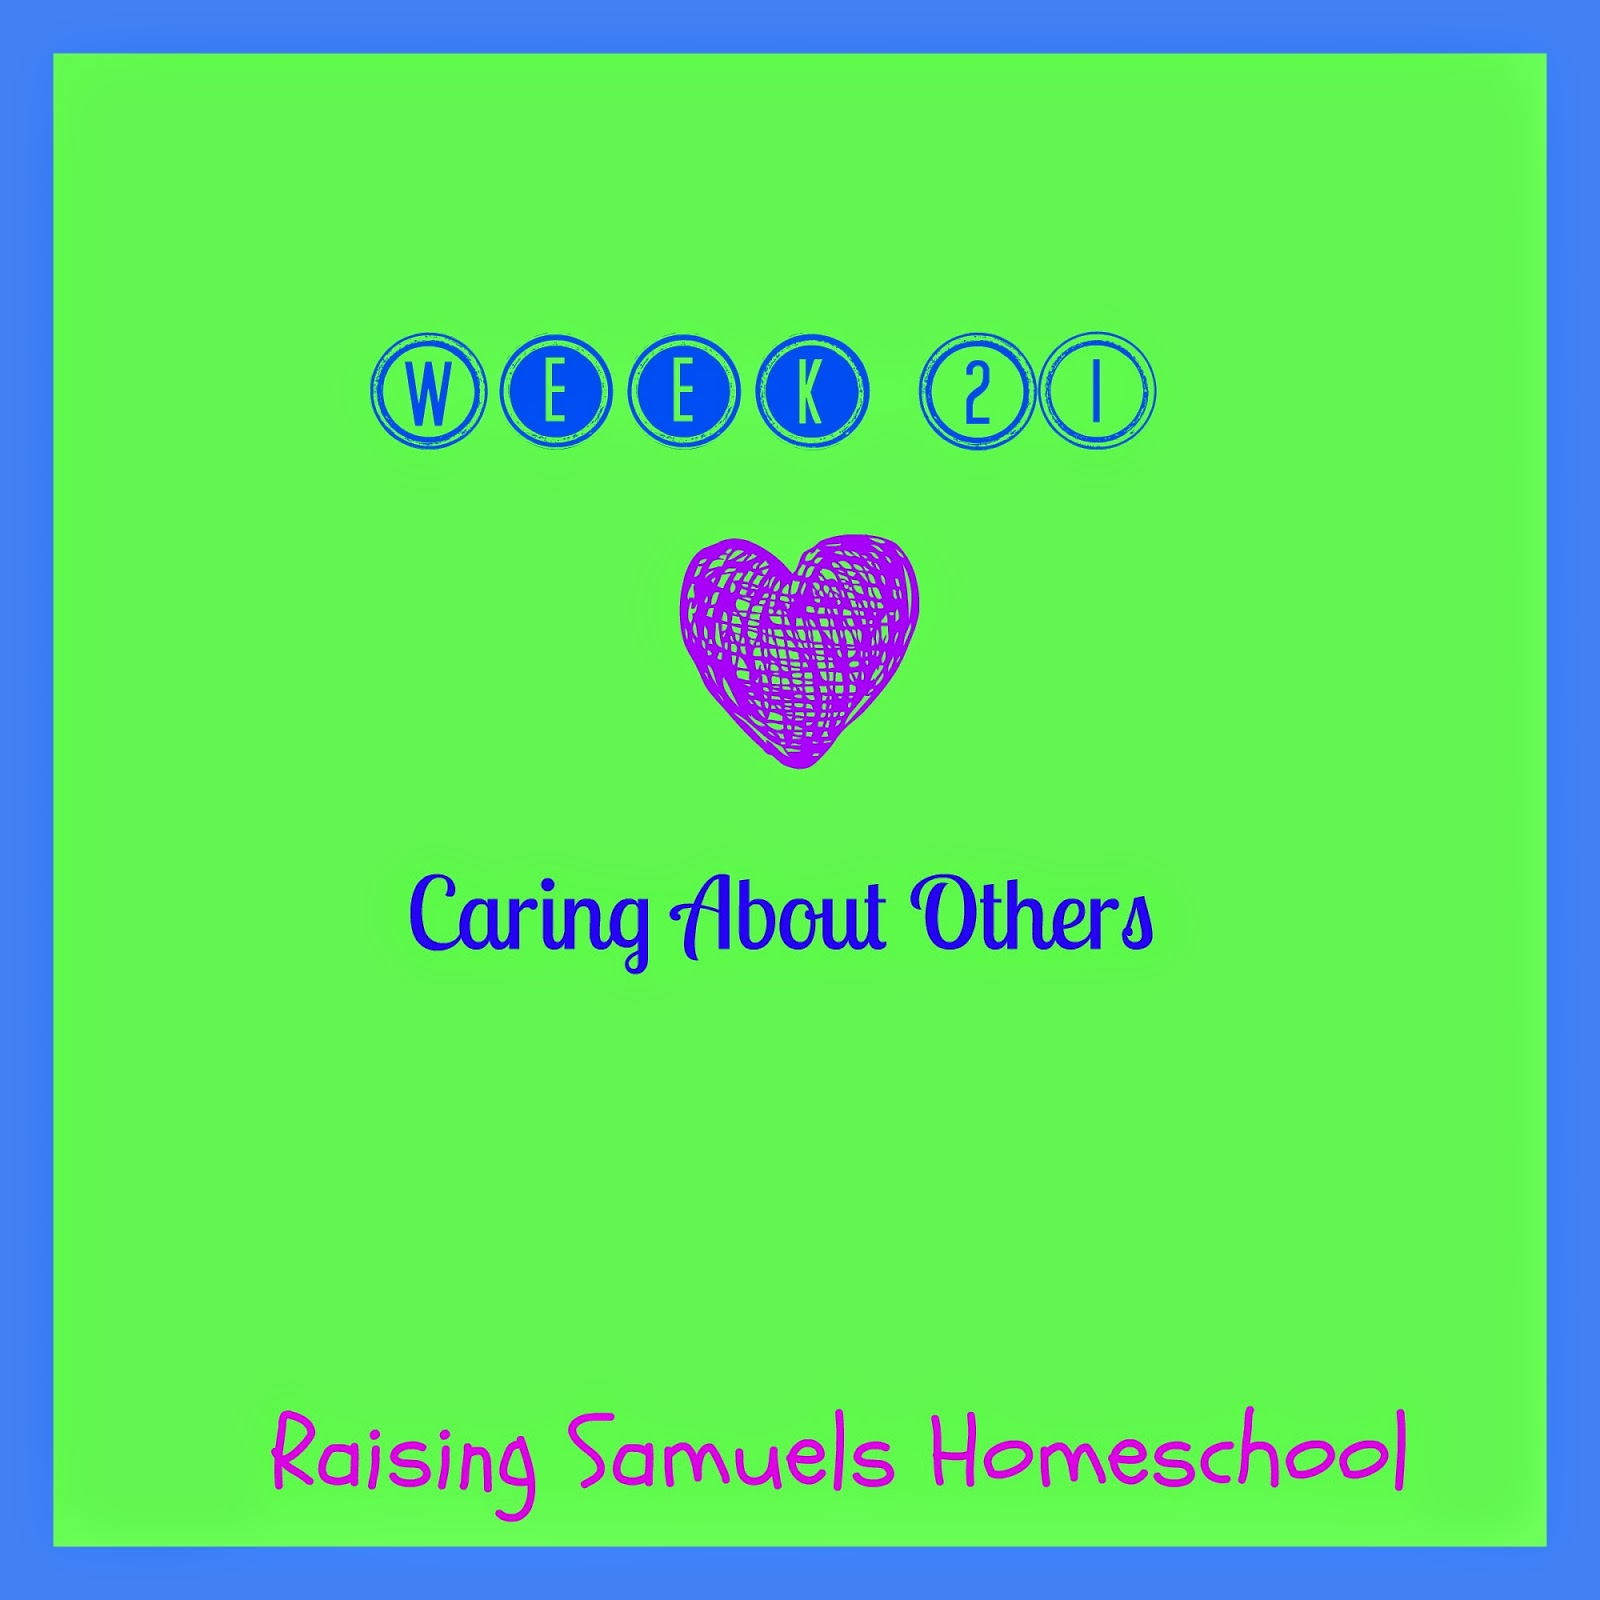 Week 21: Caring About Others